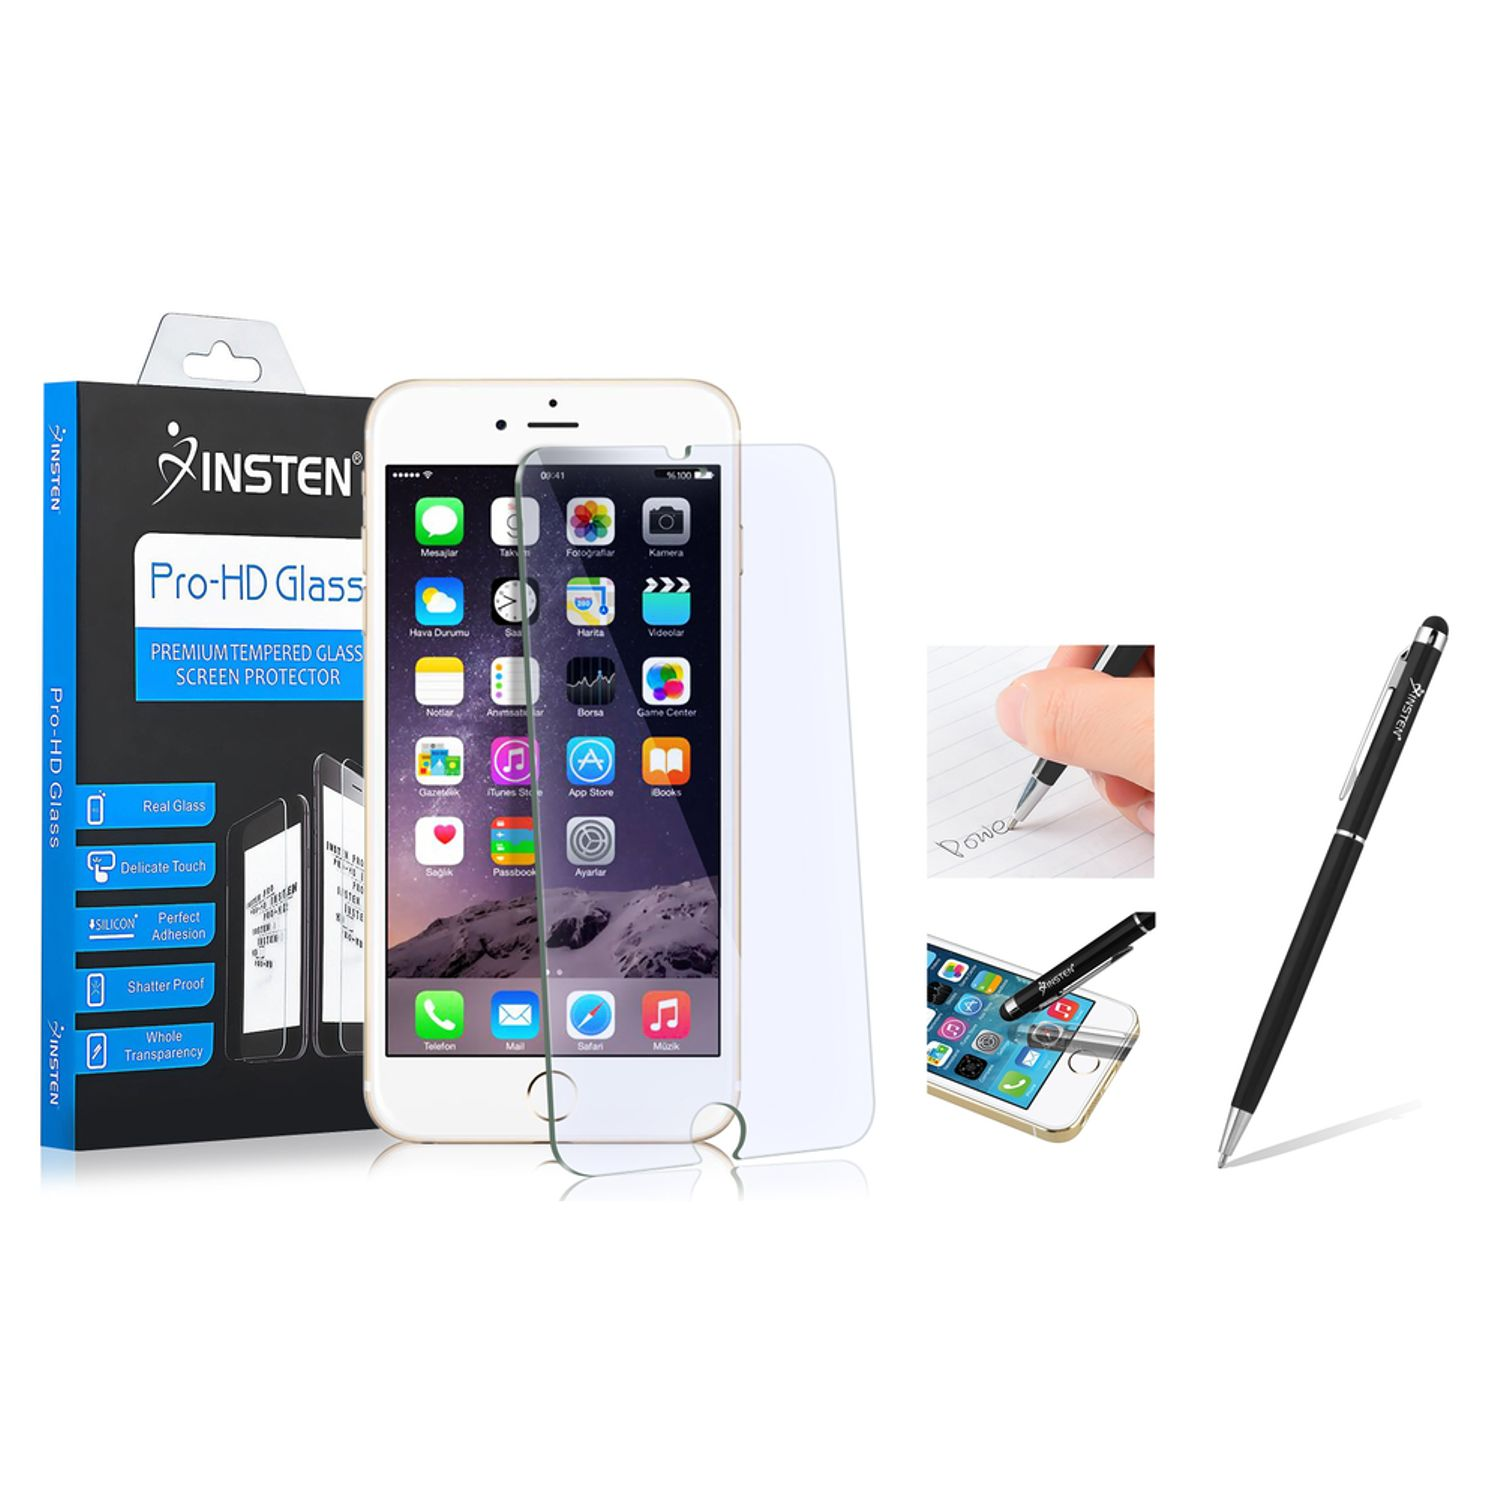 "Insten For iPhone 6S Plus 6 Plus 5.5"" Tempered Glass Screen Protector (with Stylus Ballpoint Pen) (2-in-1 Accessory Bundle)"